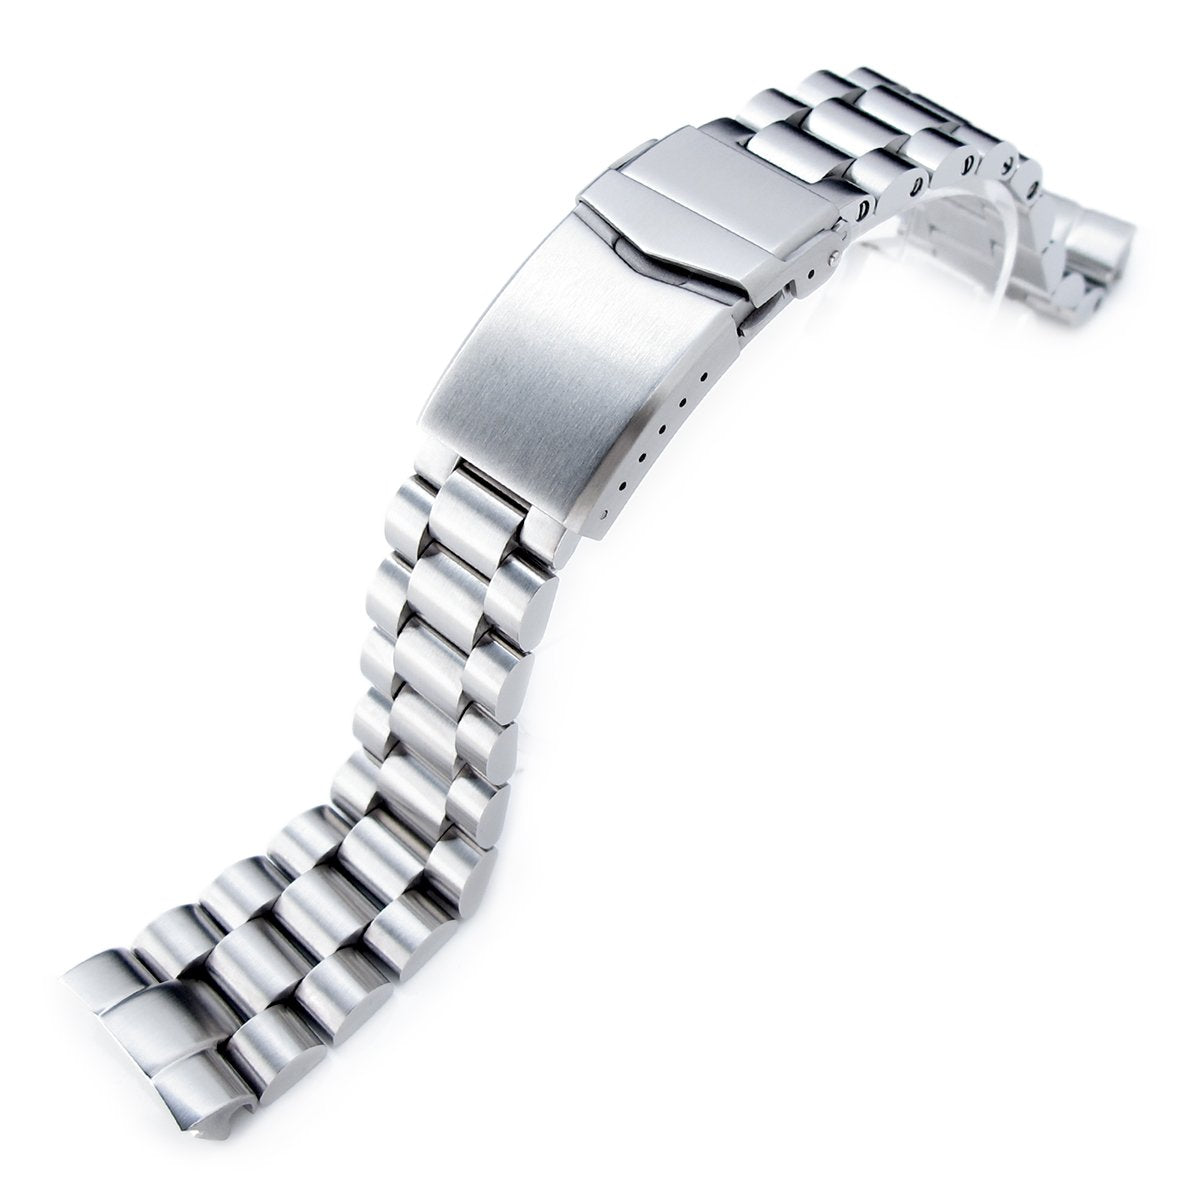 22mm Endmill 316L Stainless Steel Watch Bracelet for Seiko New Turtles SRP777 & PADI SRPA21 V-Clasp Brushed Strapcode Watch Bands